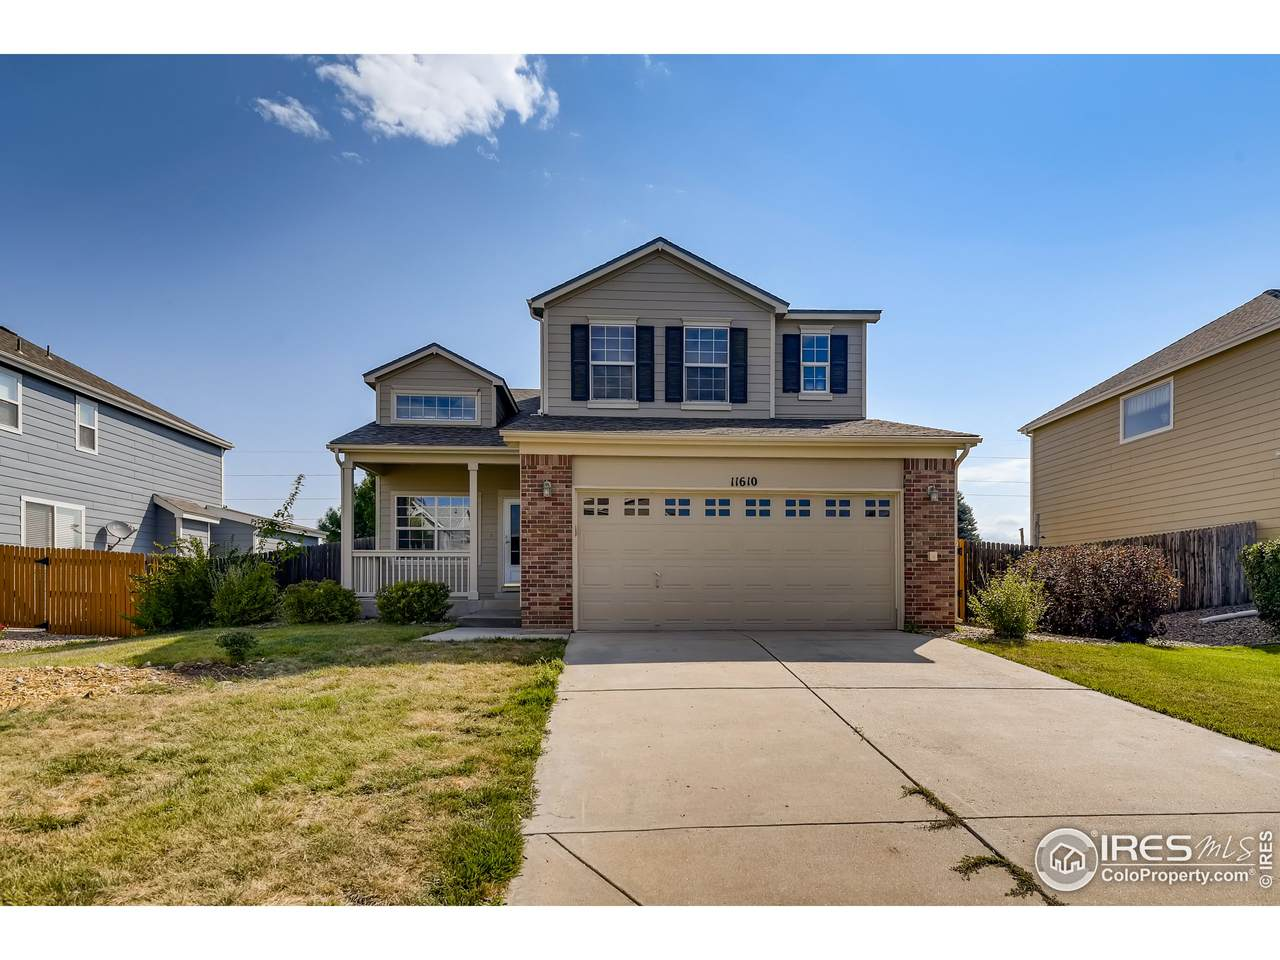 11610 Crow Hill Dr - Photo 1